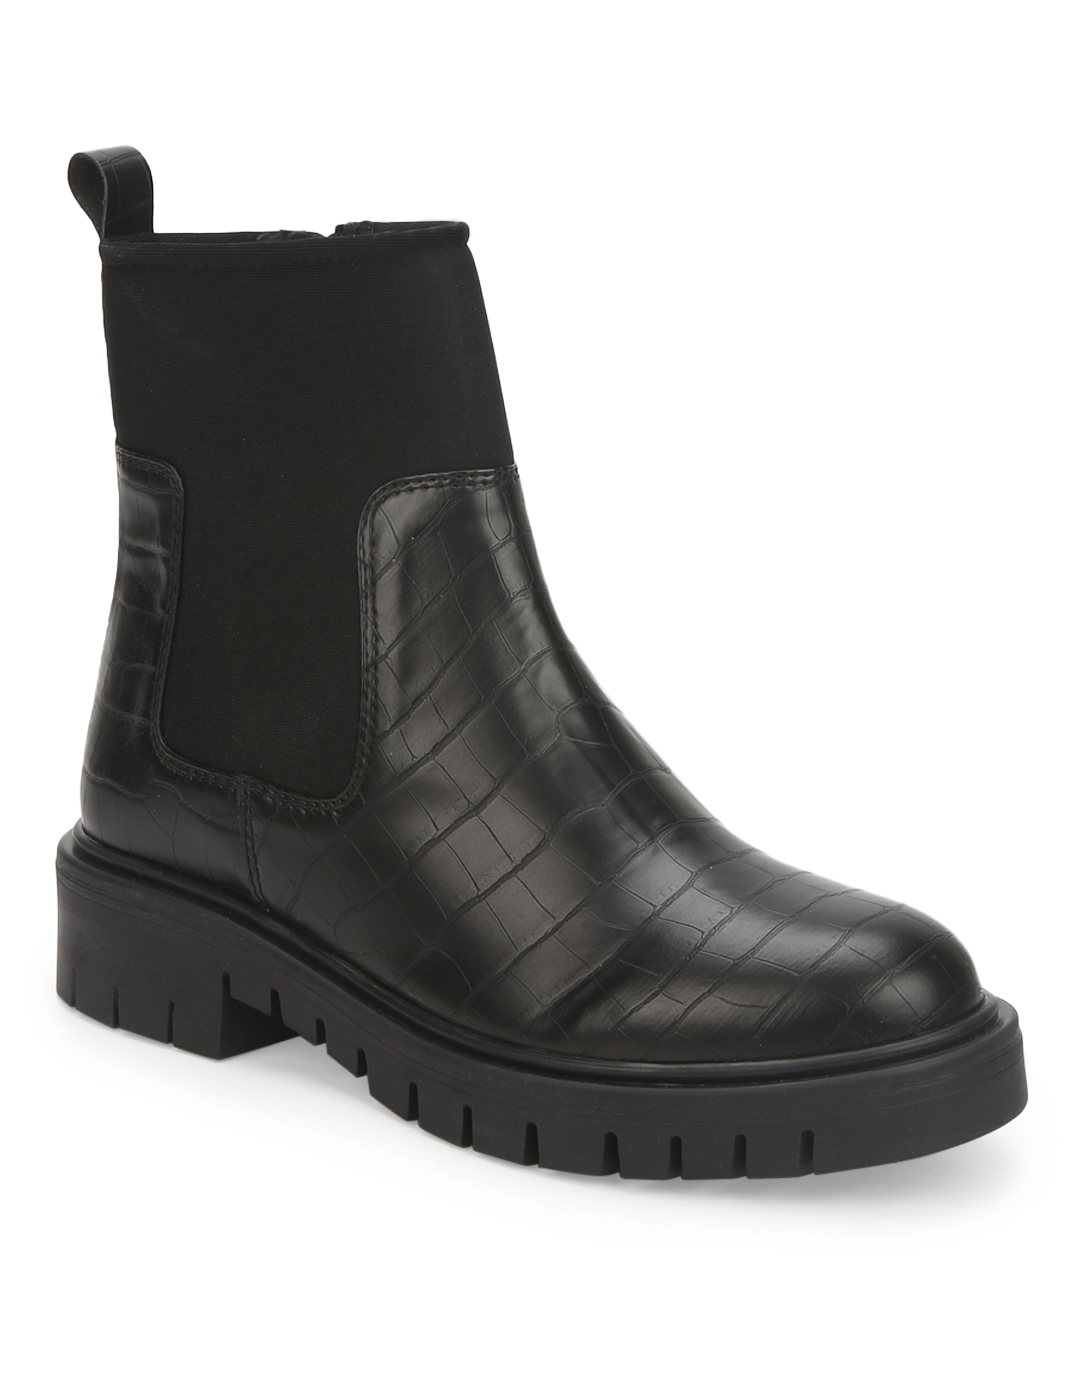 Truffle Collection | Black Croc PU Cleated Bottom Ankle Boots